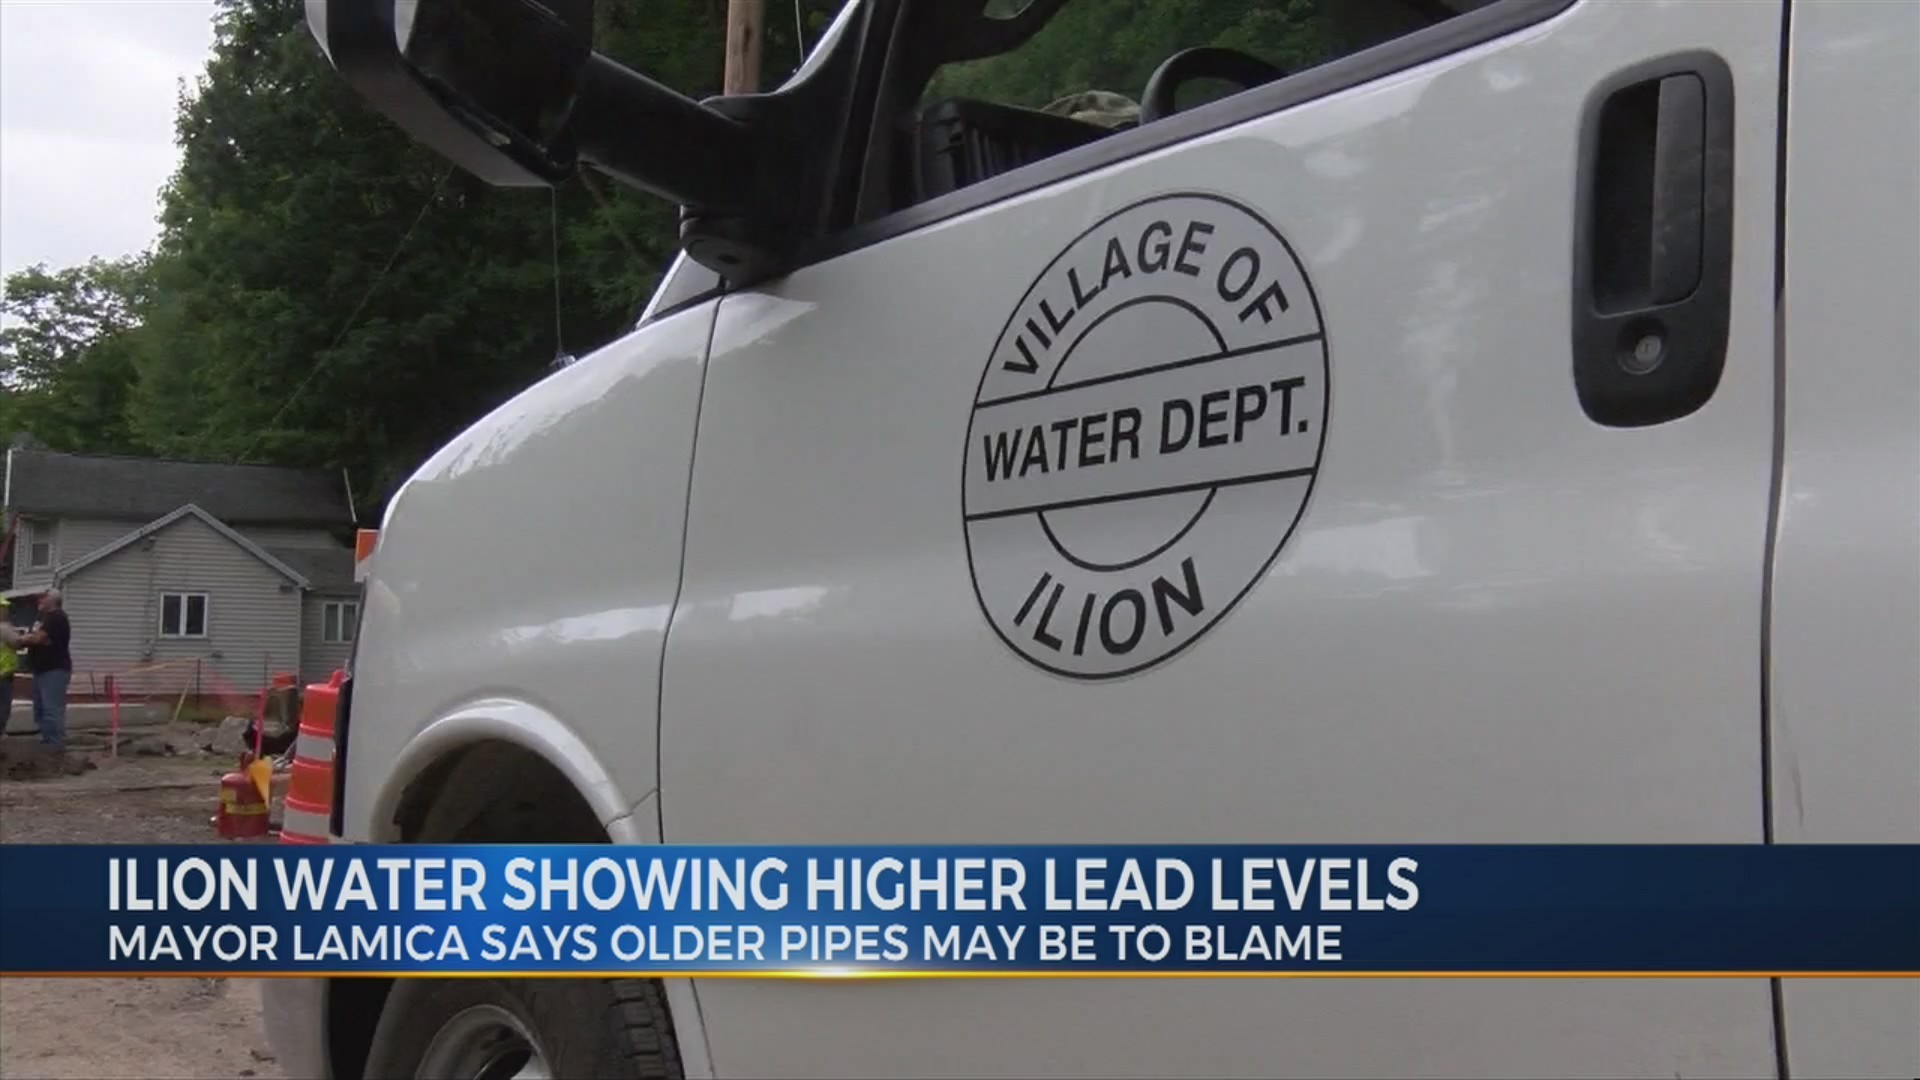 Ilion_Water_Showing_Higher_Lead_Levels_0_20181130231239